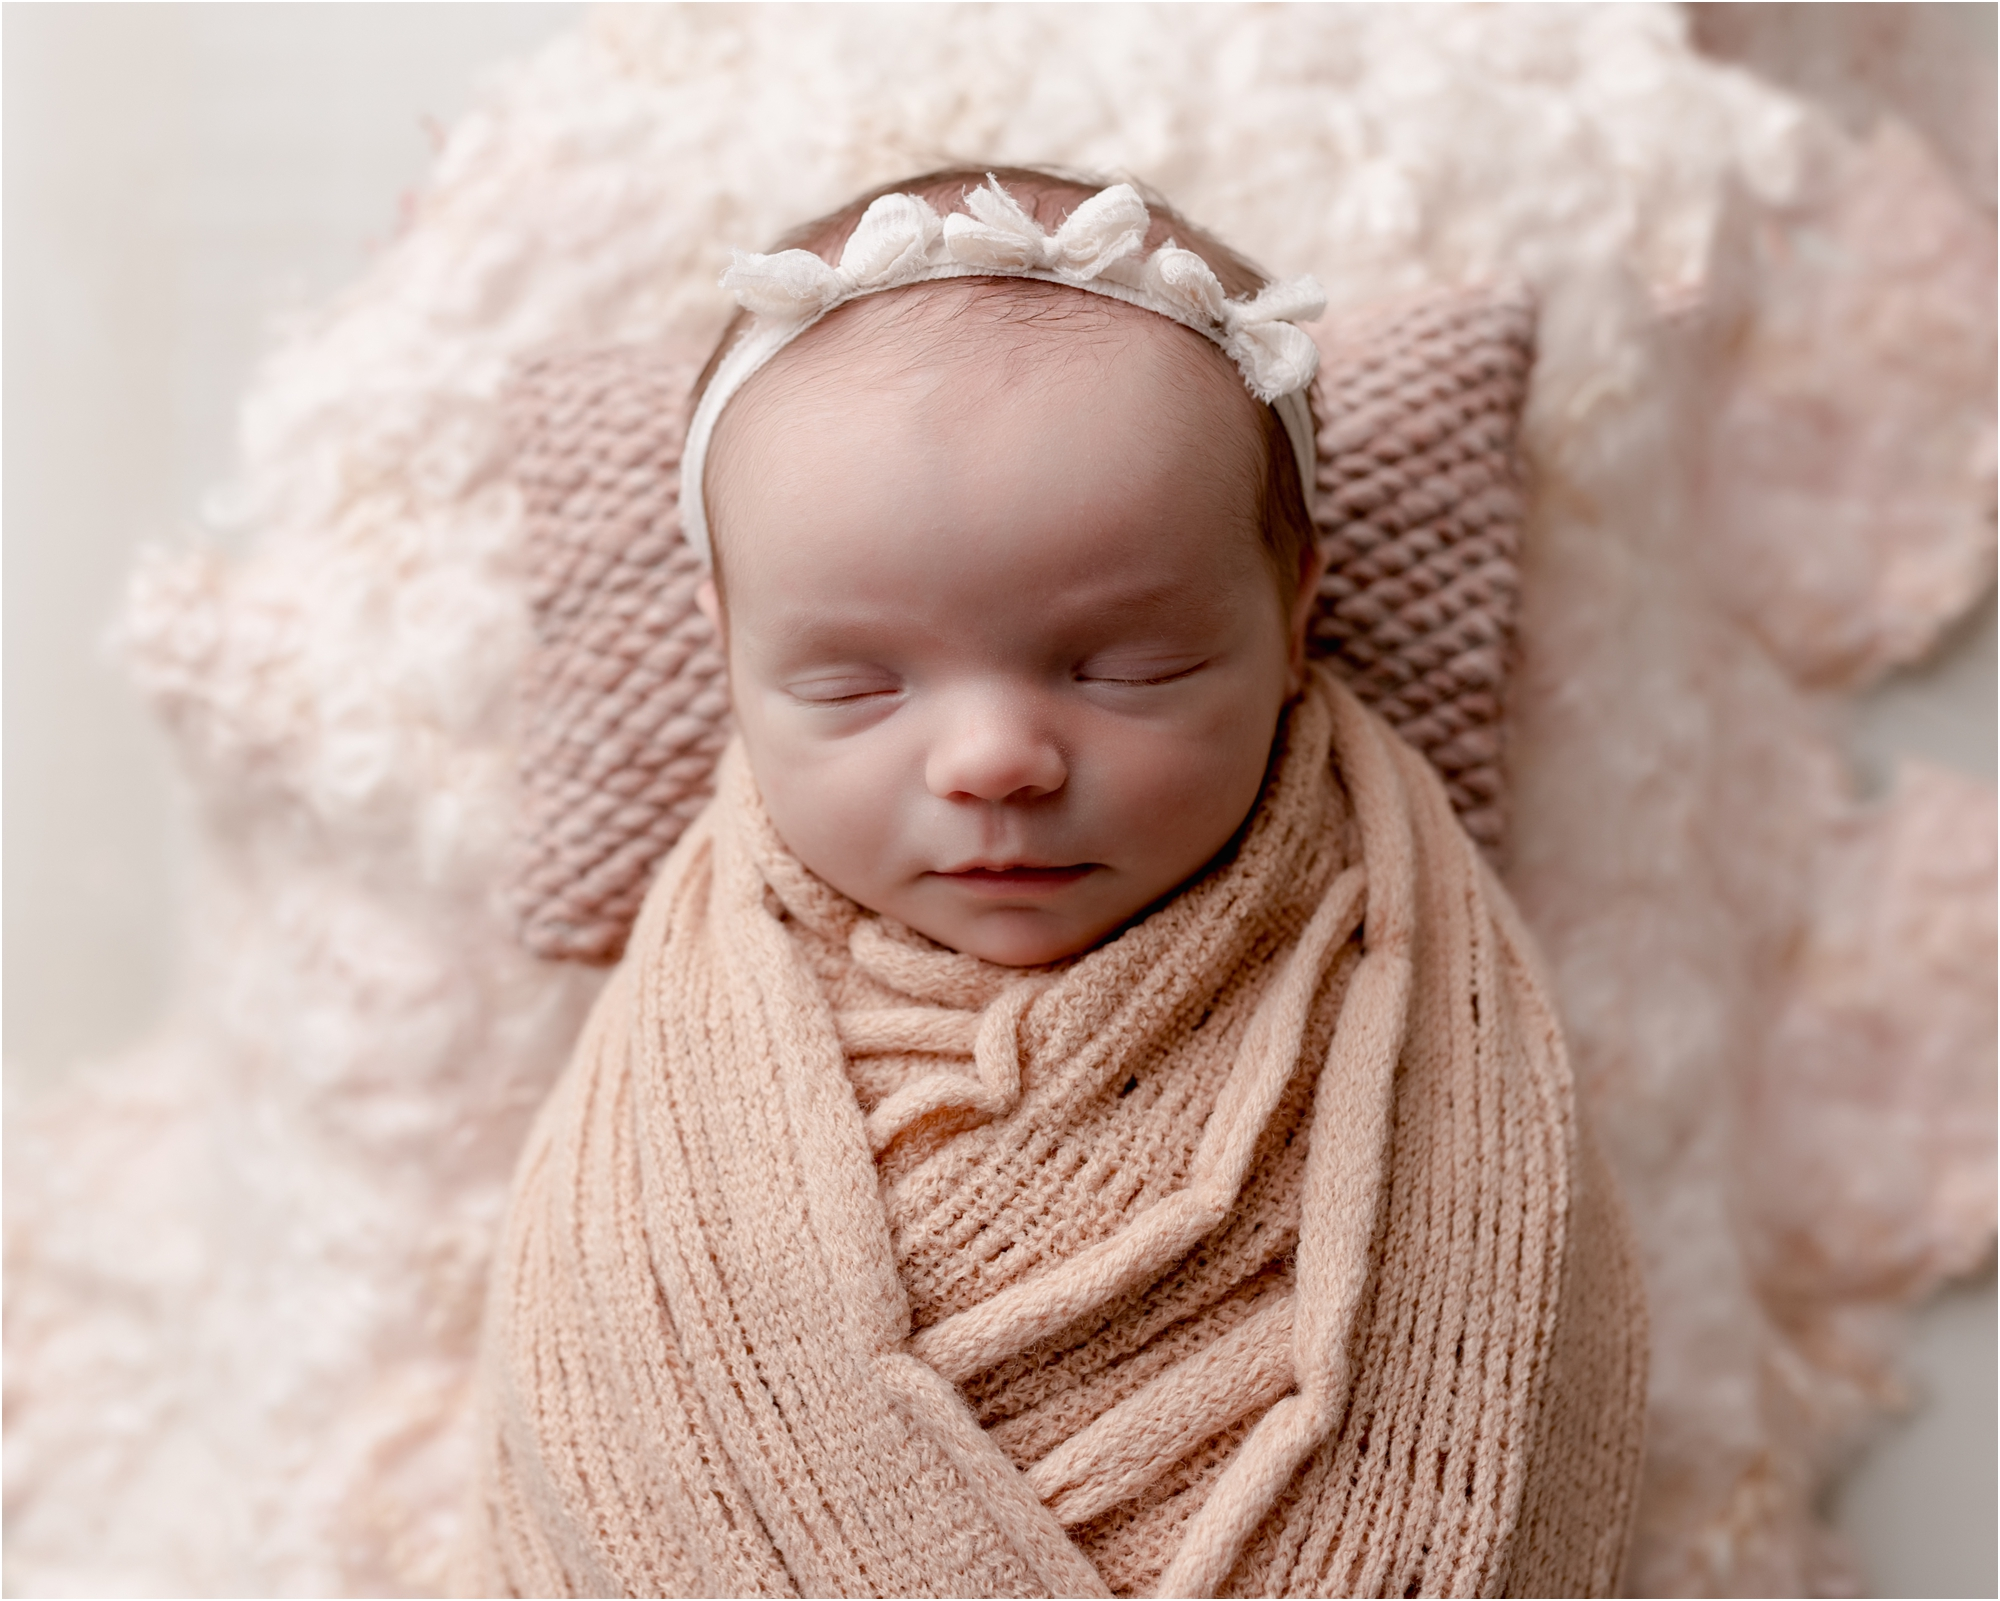 Baby girl sleeping in textured swaddles during studio newborn session. Photo by Lifetime of Clicks Photography.